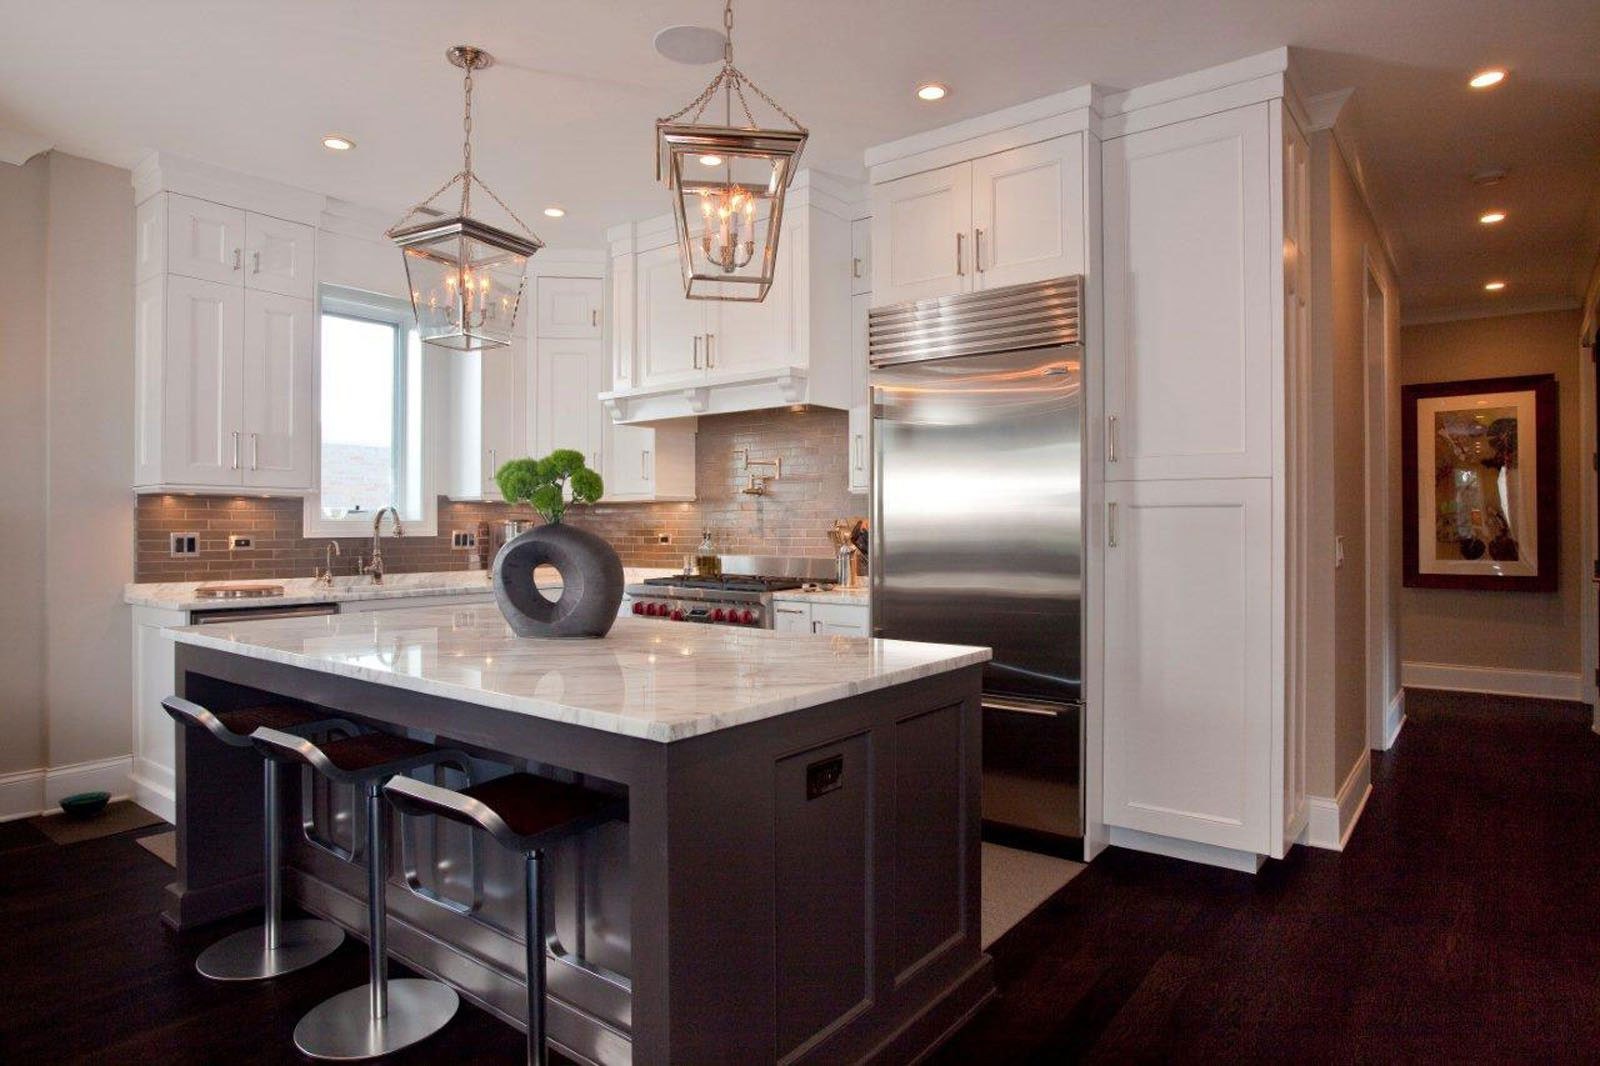 prestige hardwood flooring elmsford ny of listings search eterno group within apartment kitchen decor wall additional open metal racks fresh white wooden cabinets design wall mounted plate modern double galley kitchen style wooden dining kitchen